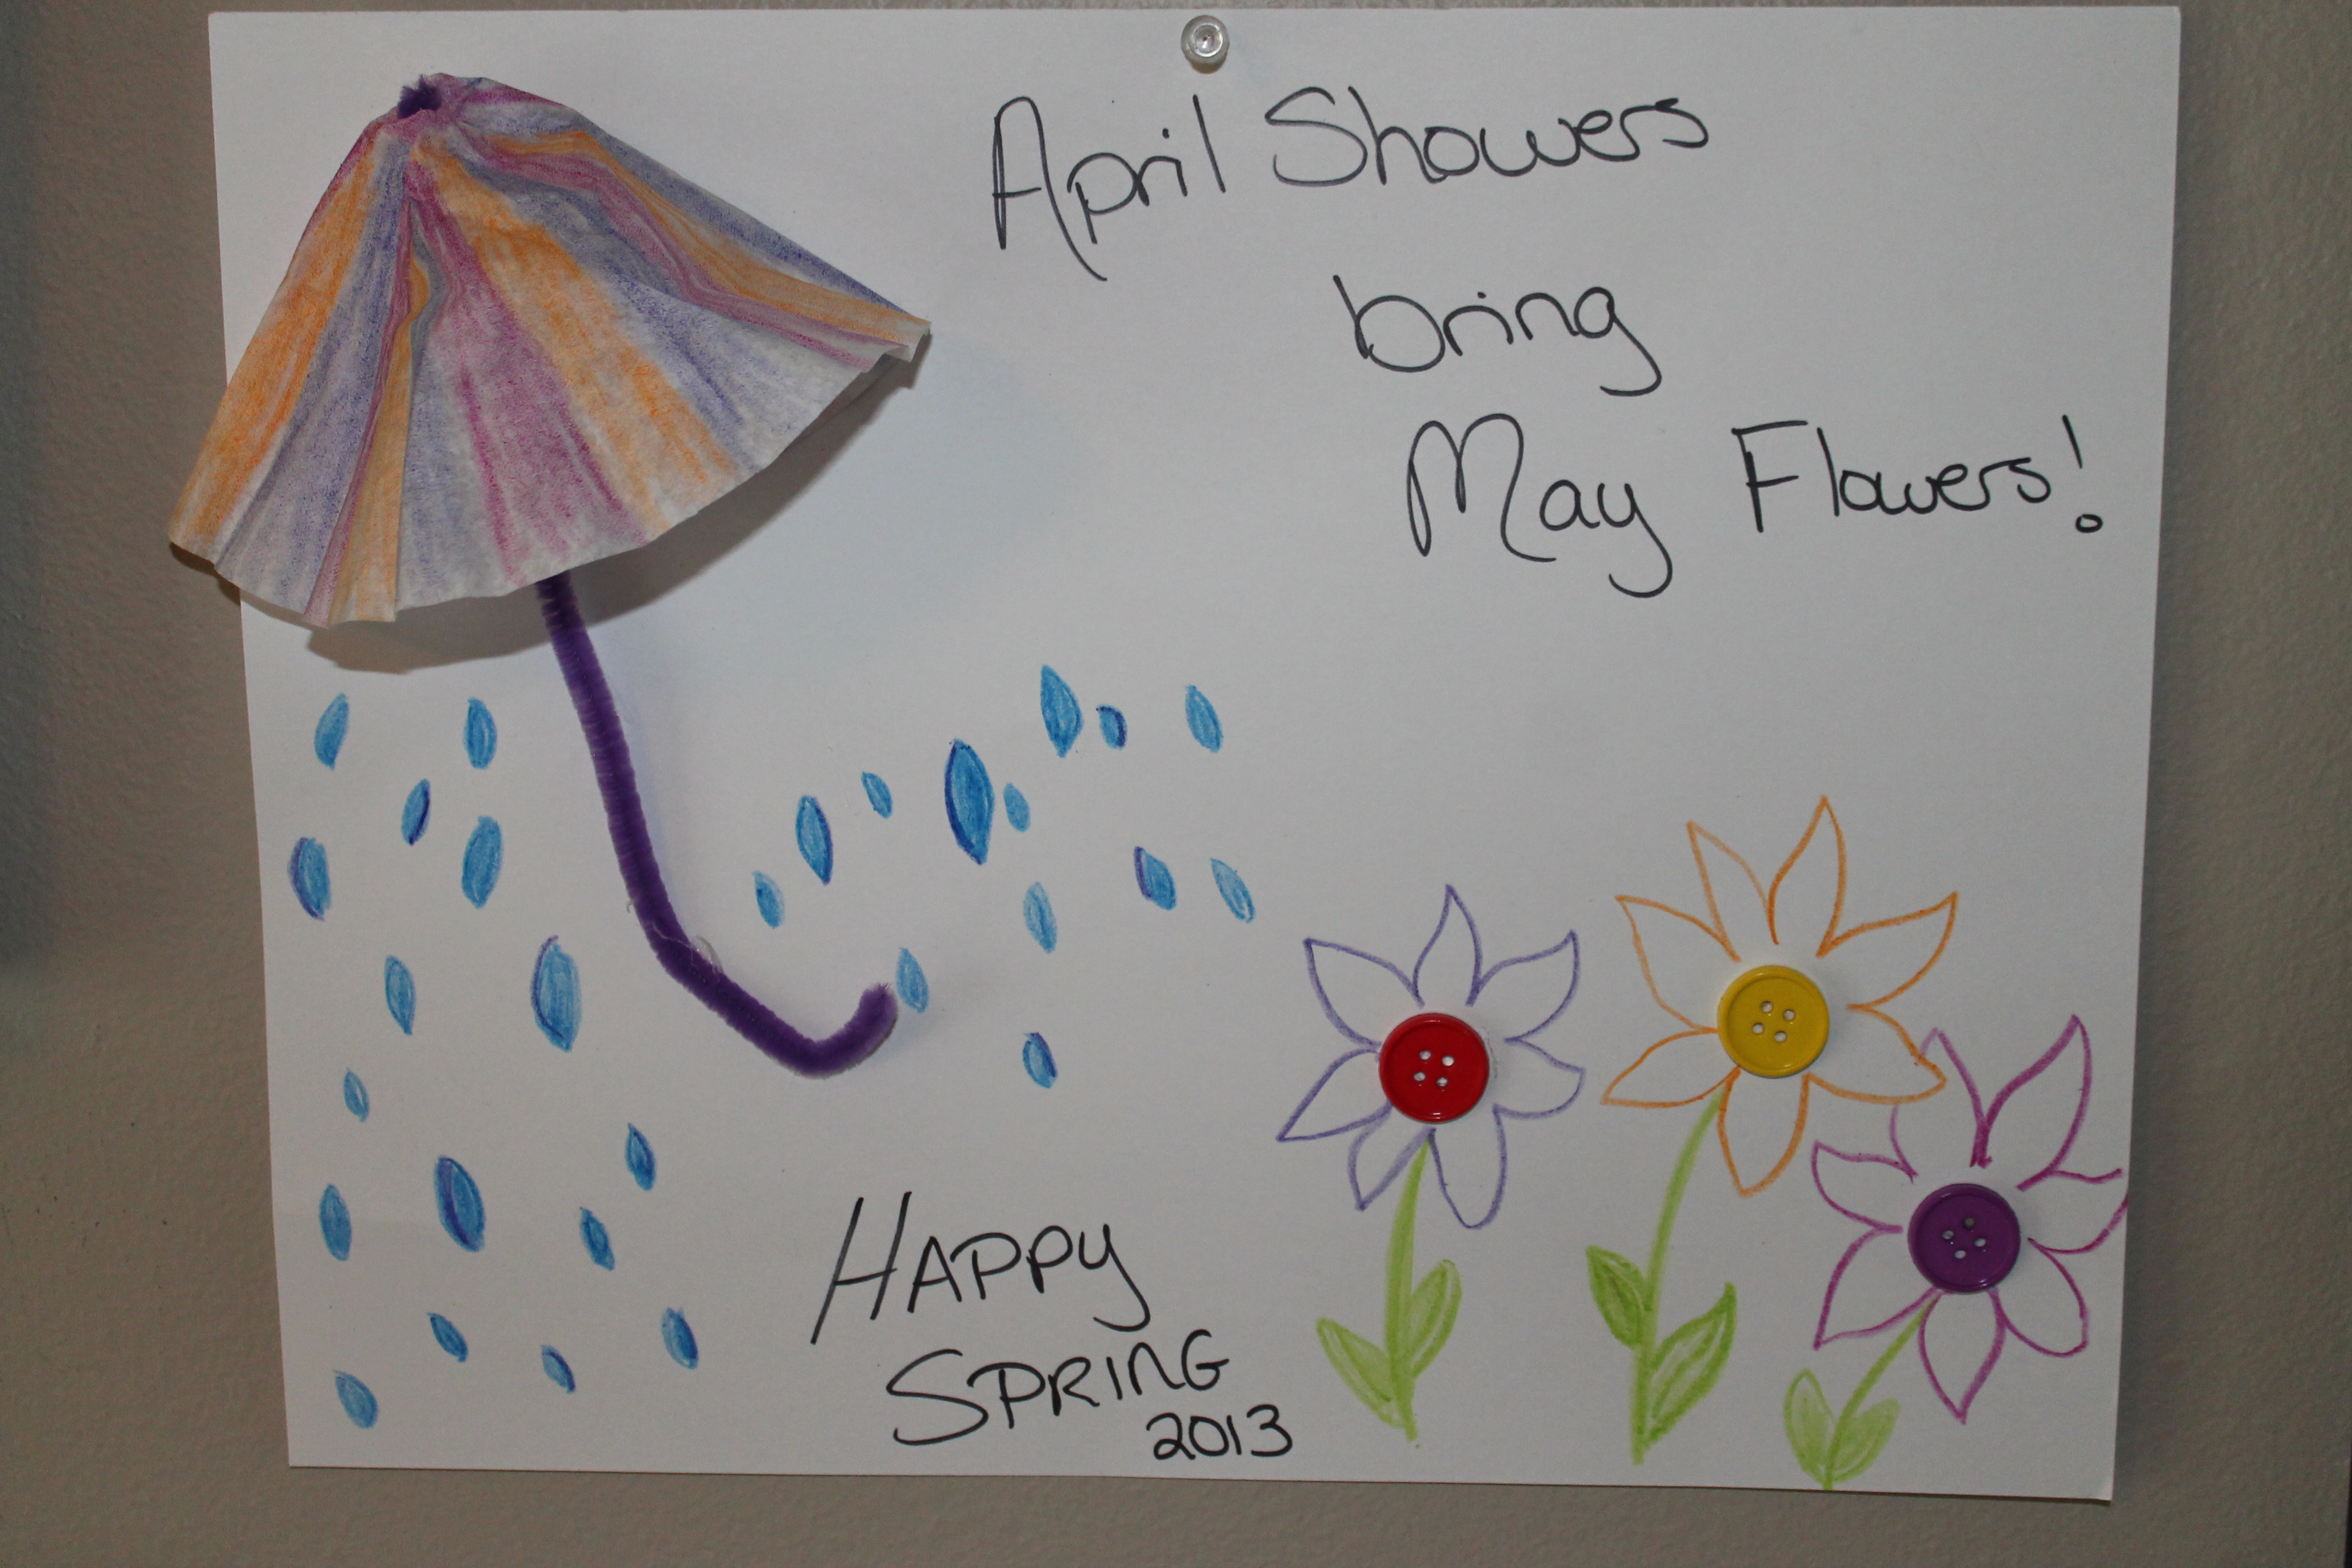 april showers bring may flowers crafts   galleryhip     the